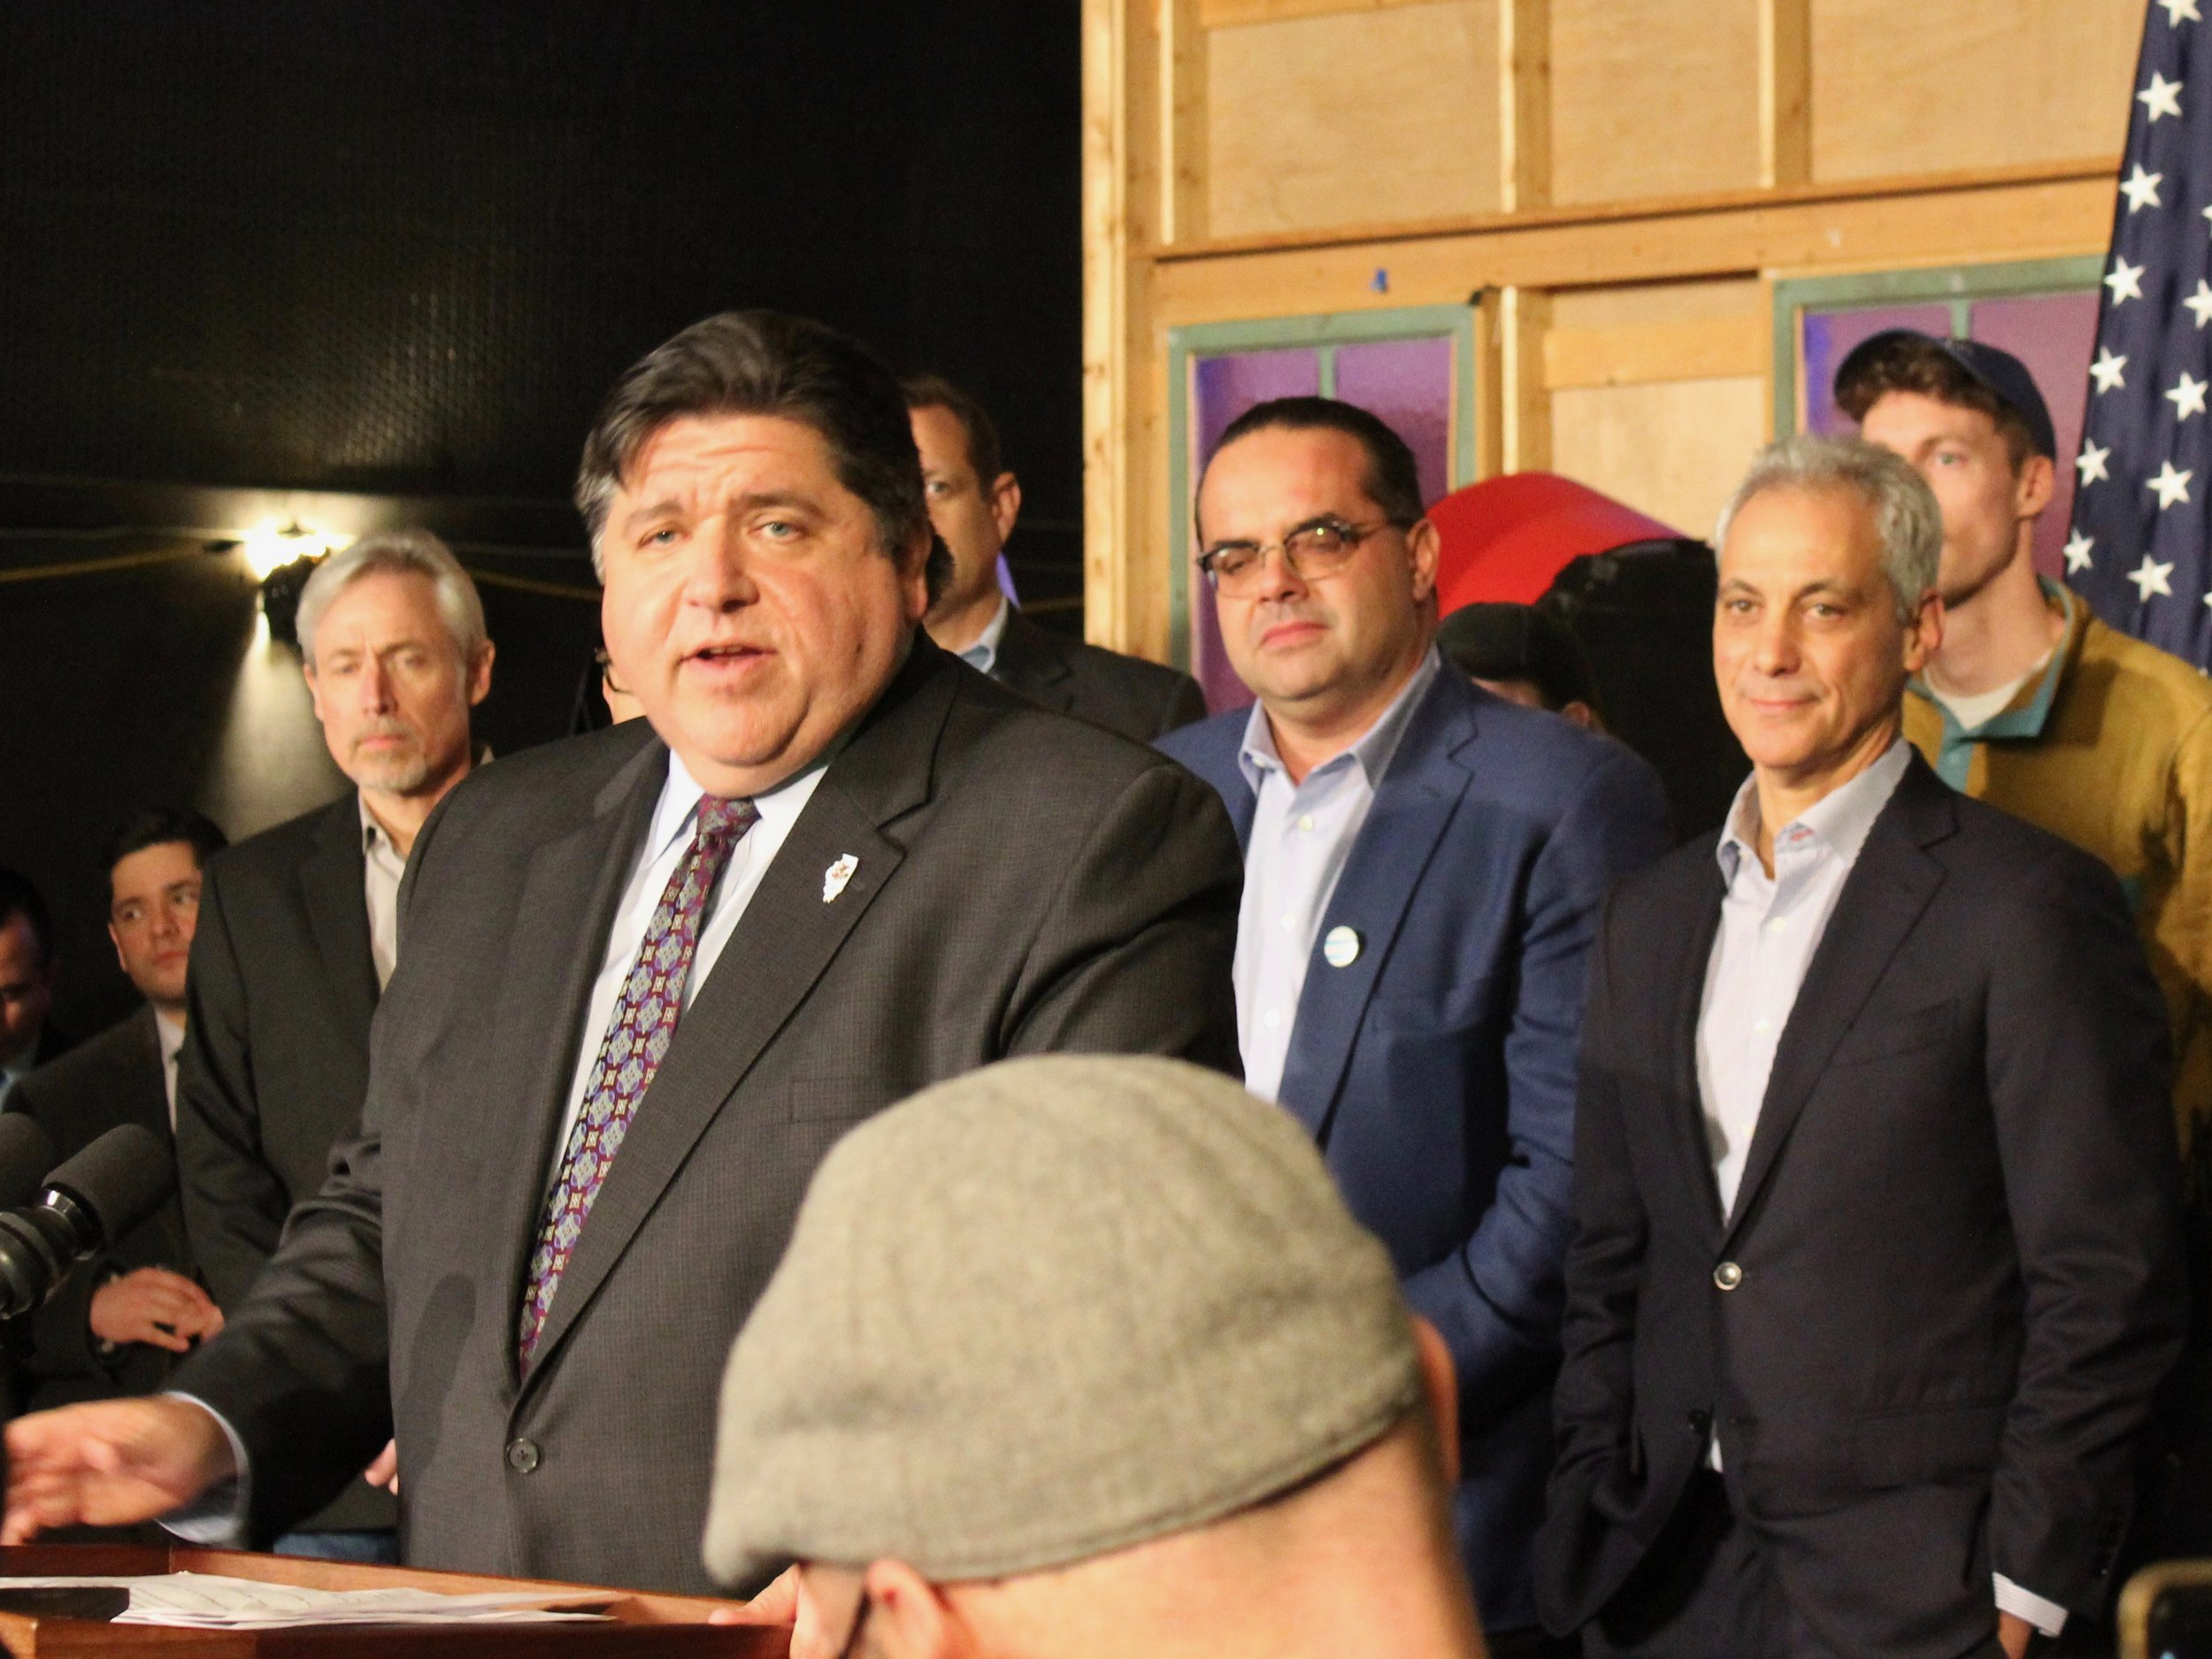 """The Illinois film industry is on the rise, and it's not slowing down."" - Gov. J.B. Pritzker"